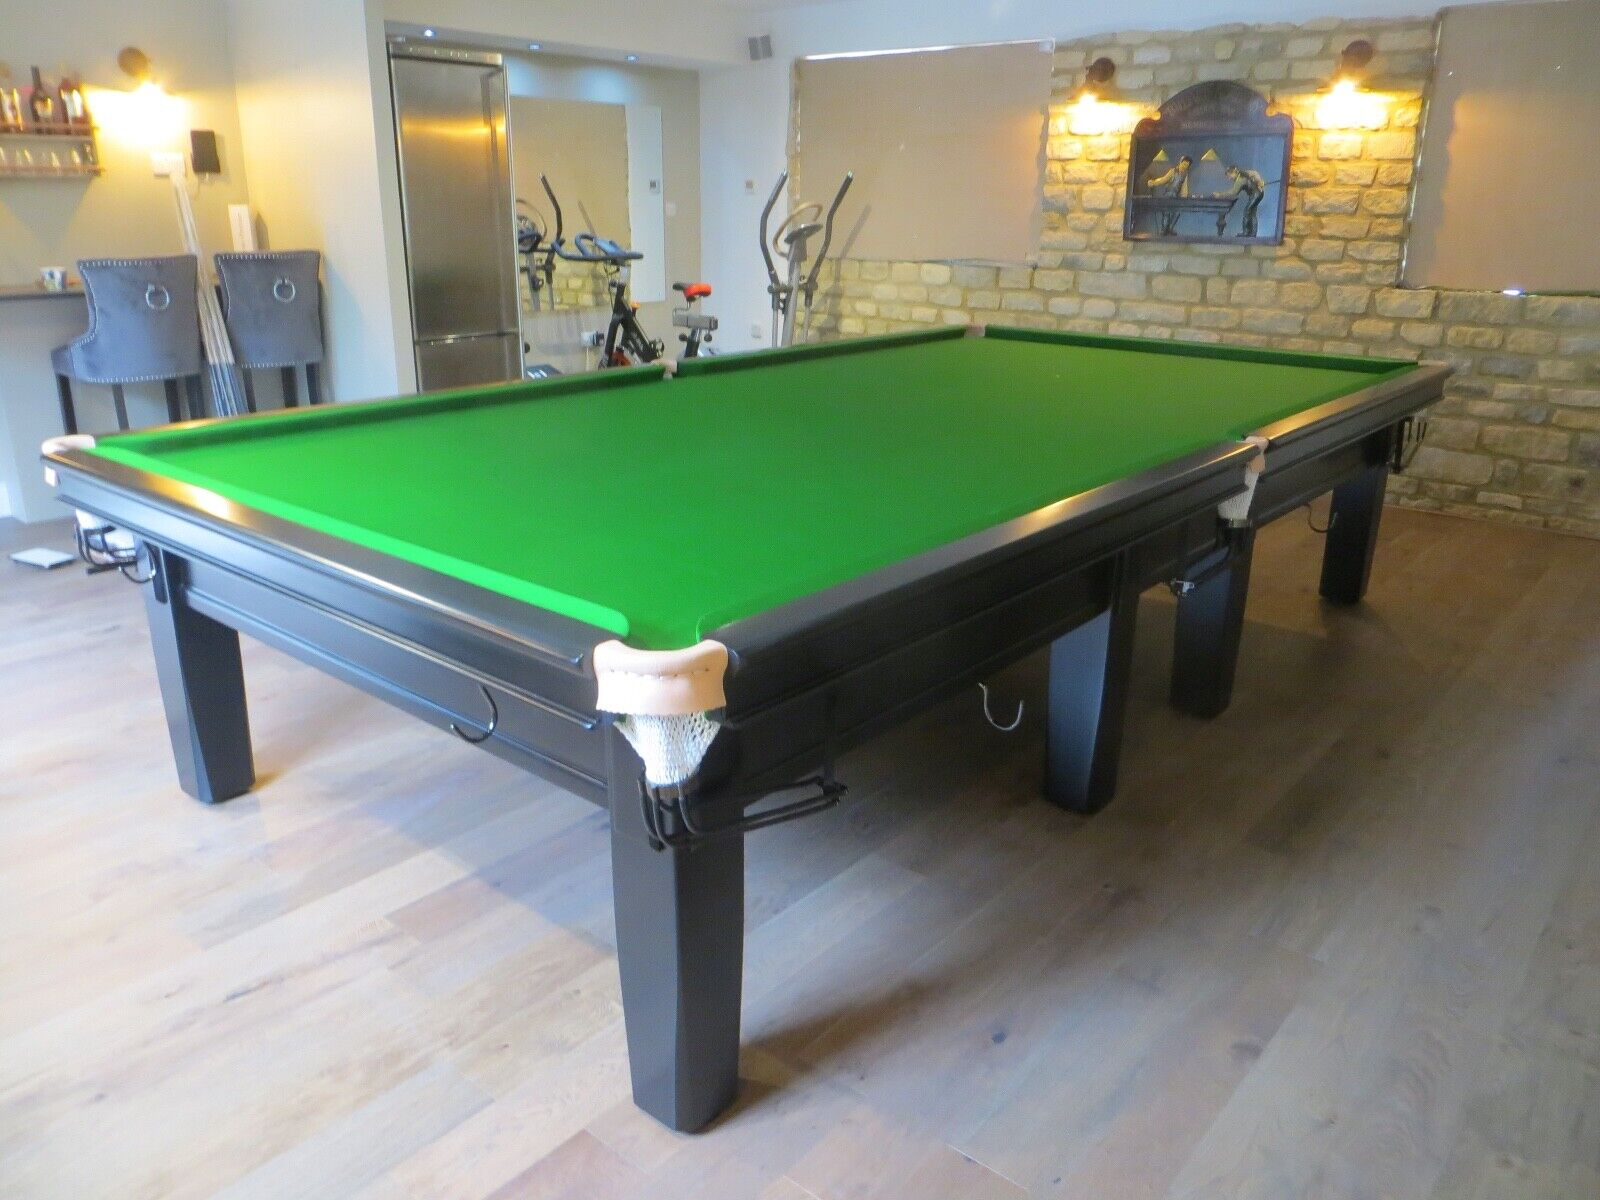 Burroughes and Watts Full Size Black Snooker Table with Steel Block Cushions